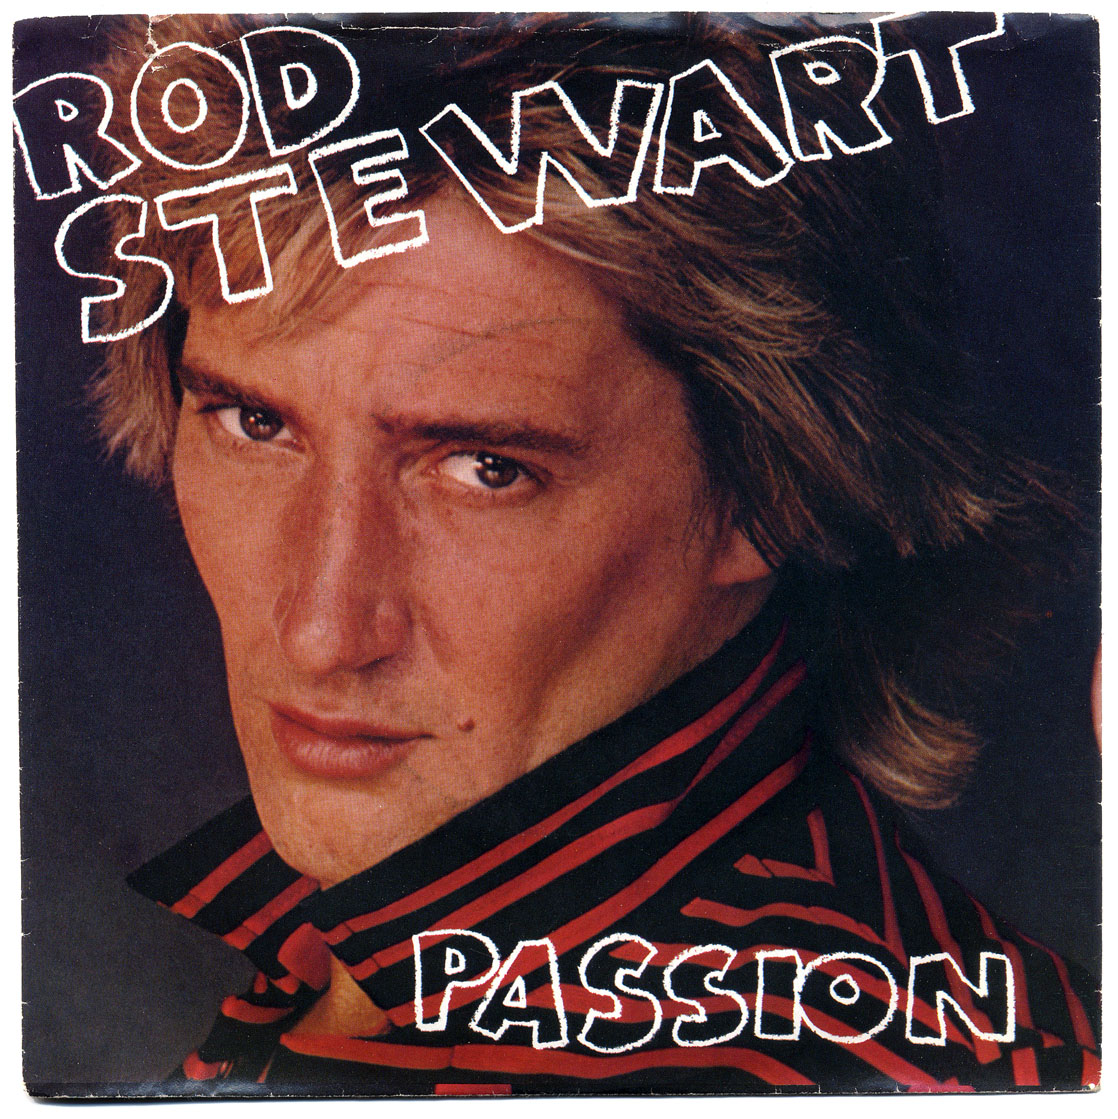 Rod Stewart - Let Me Be Your Car